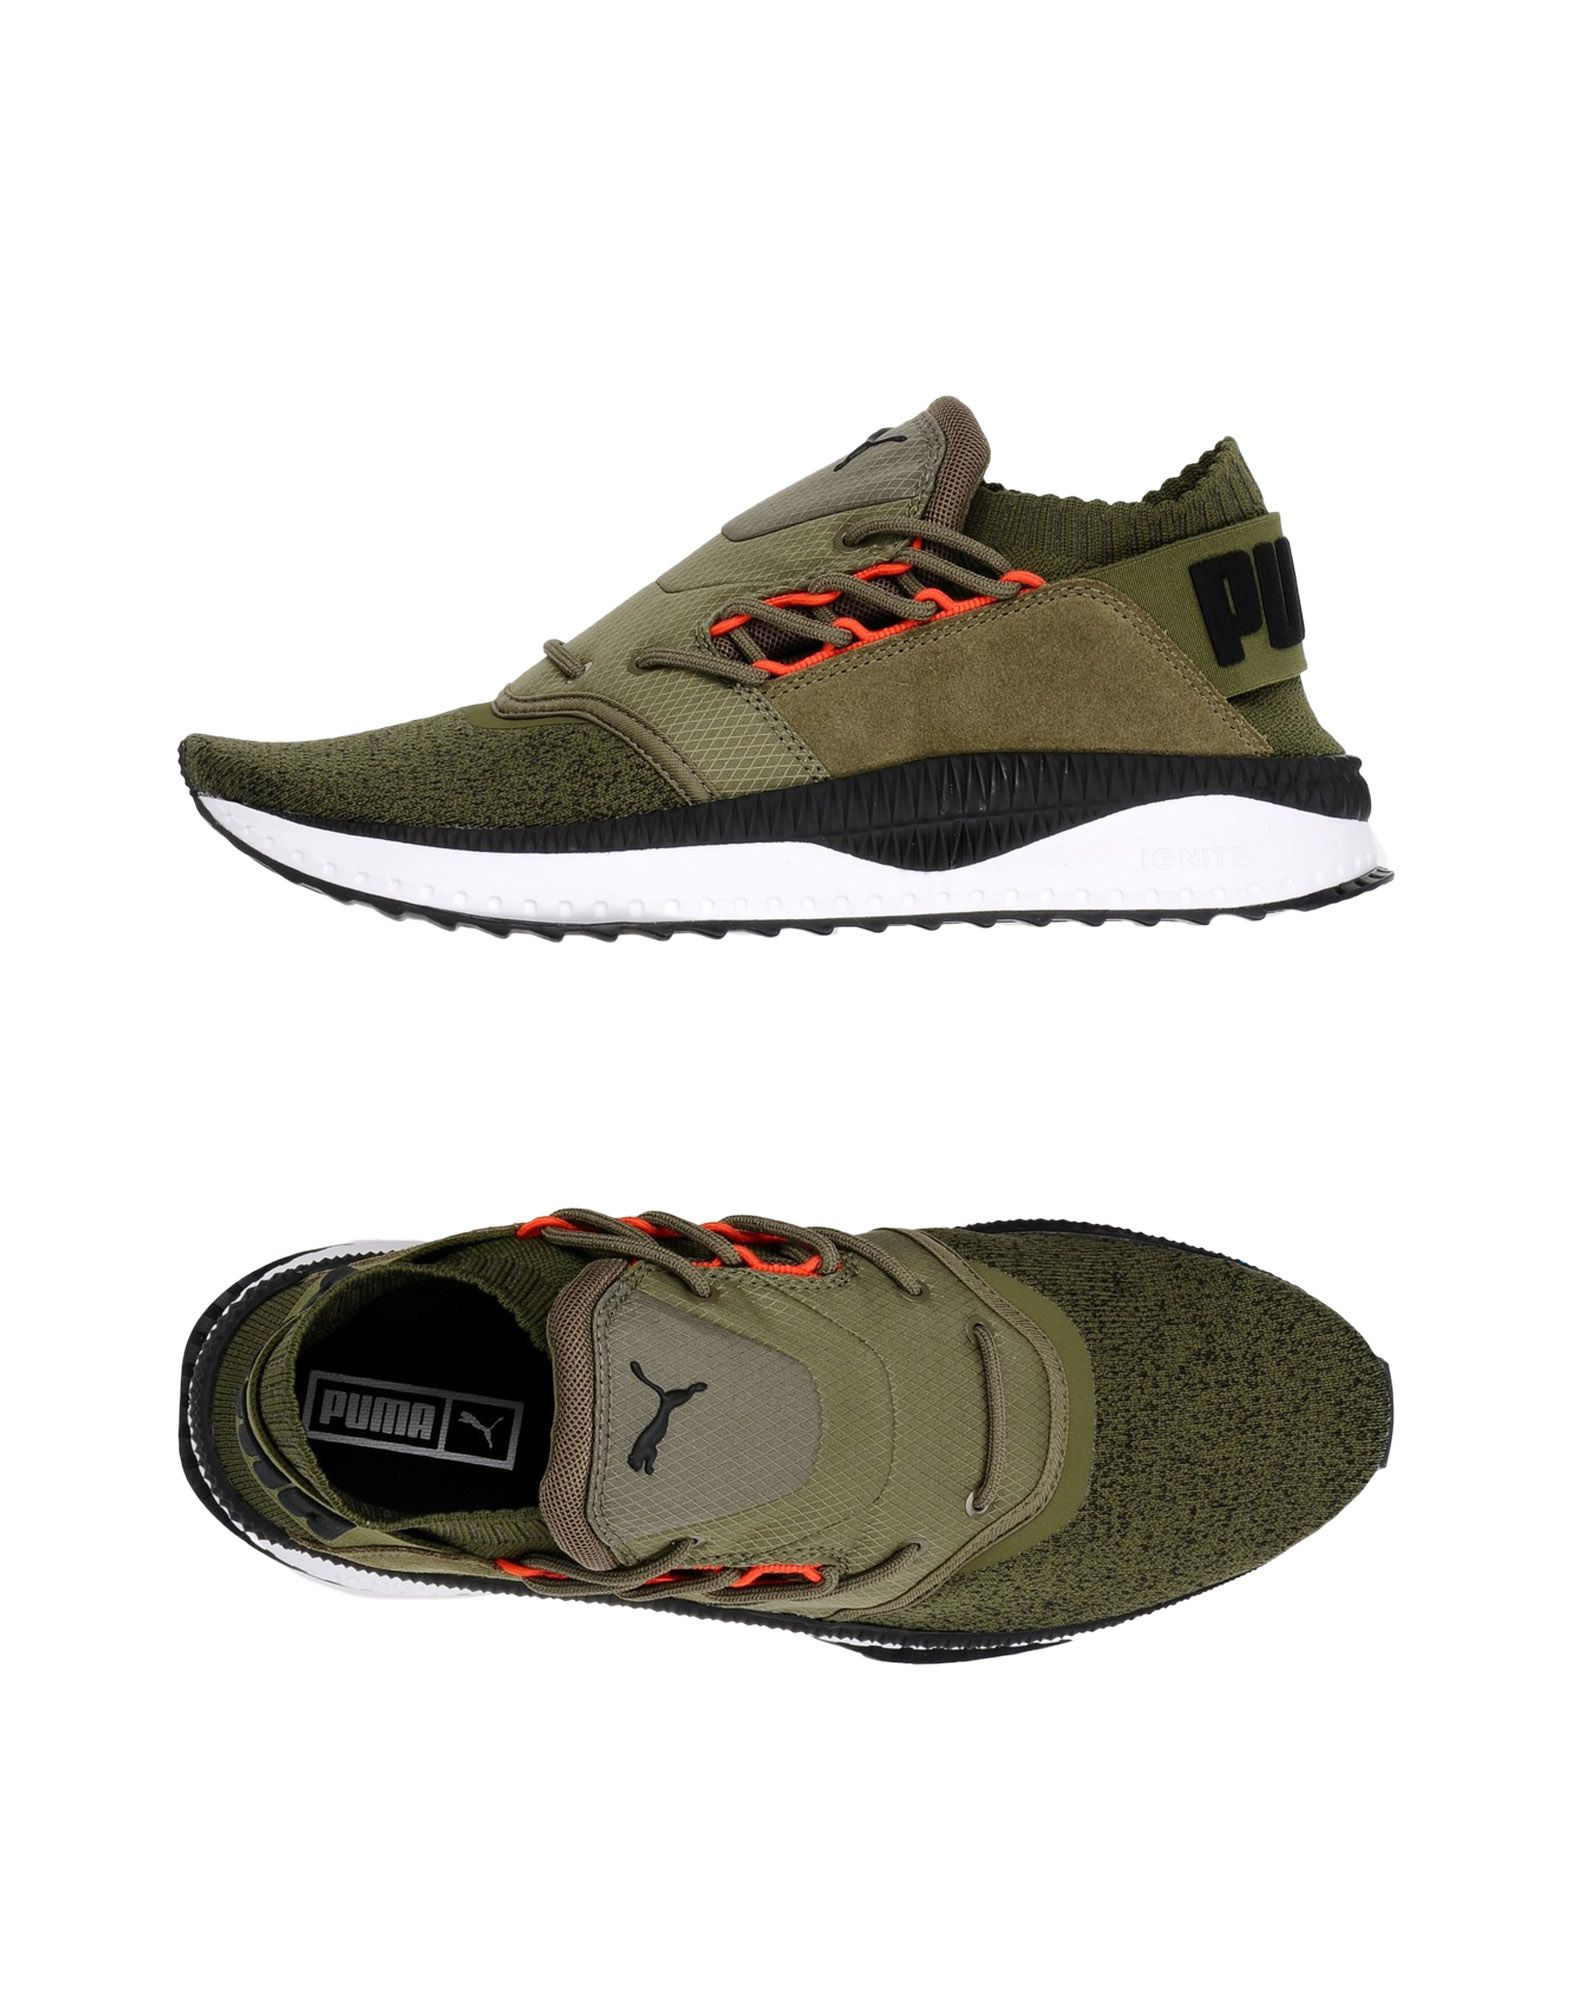 Puma Tsugi Shinsei Men Nocturnal - Sneakers - Men Shinsei Puma Sneakers online on  Canada - 11379427CI 3f198a